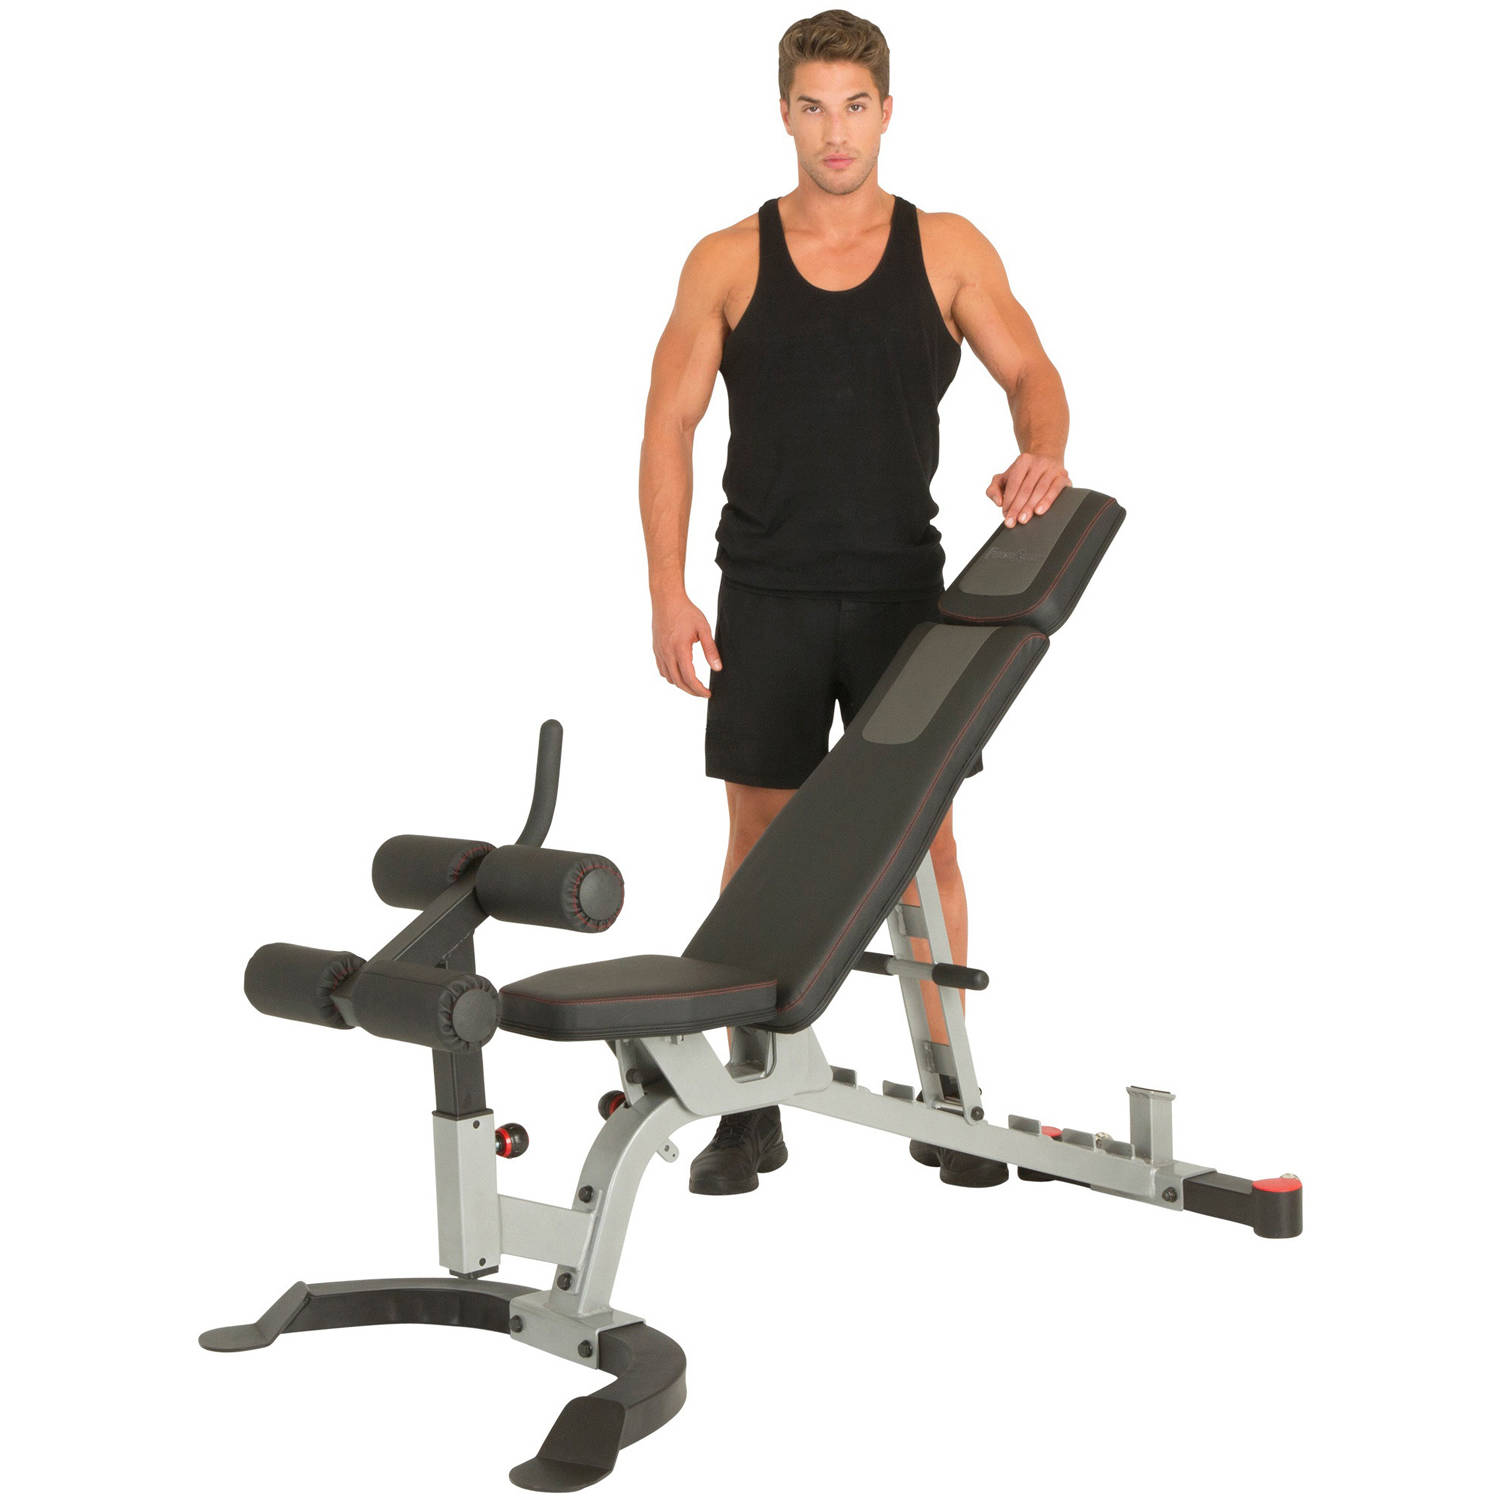 FITNESS REALITY X-Class 1500 lb Light Commercial Adjustable Utility FID Weight Bench with Detachable Leg Lock Down